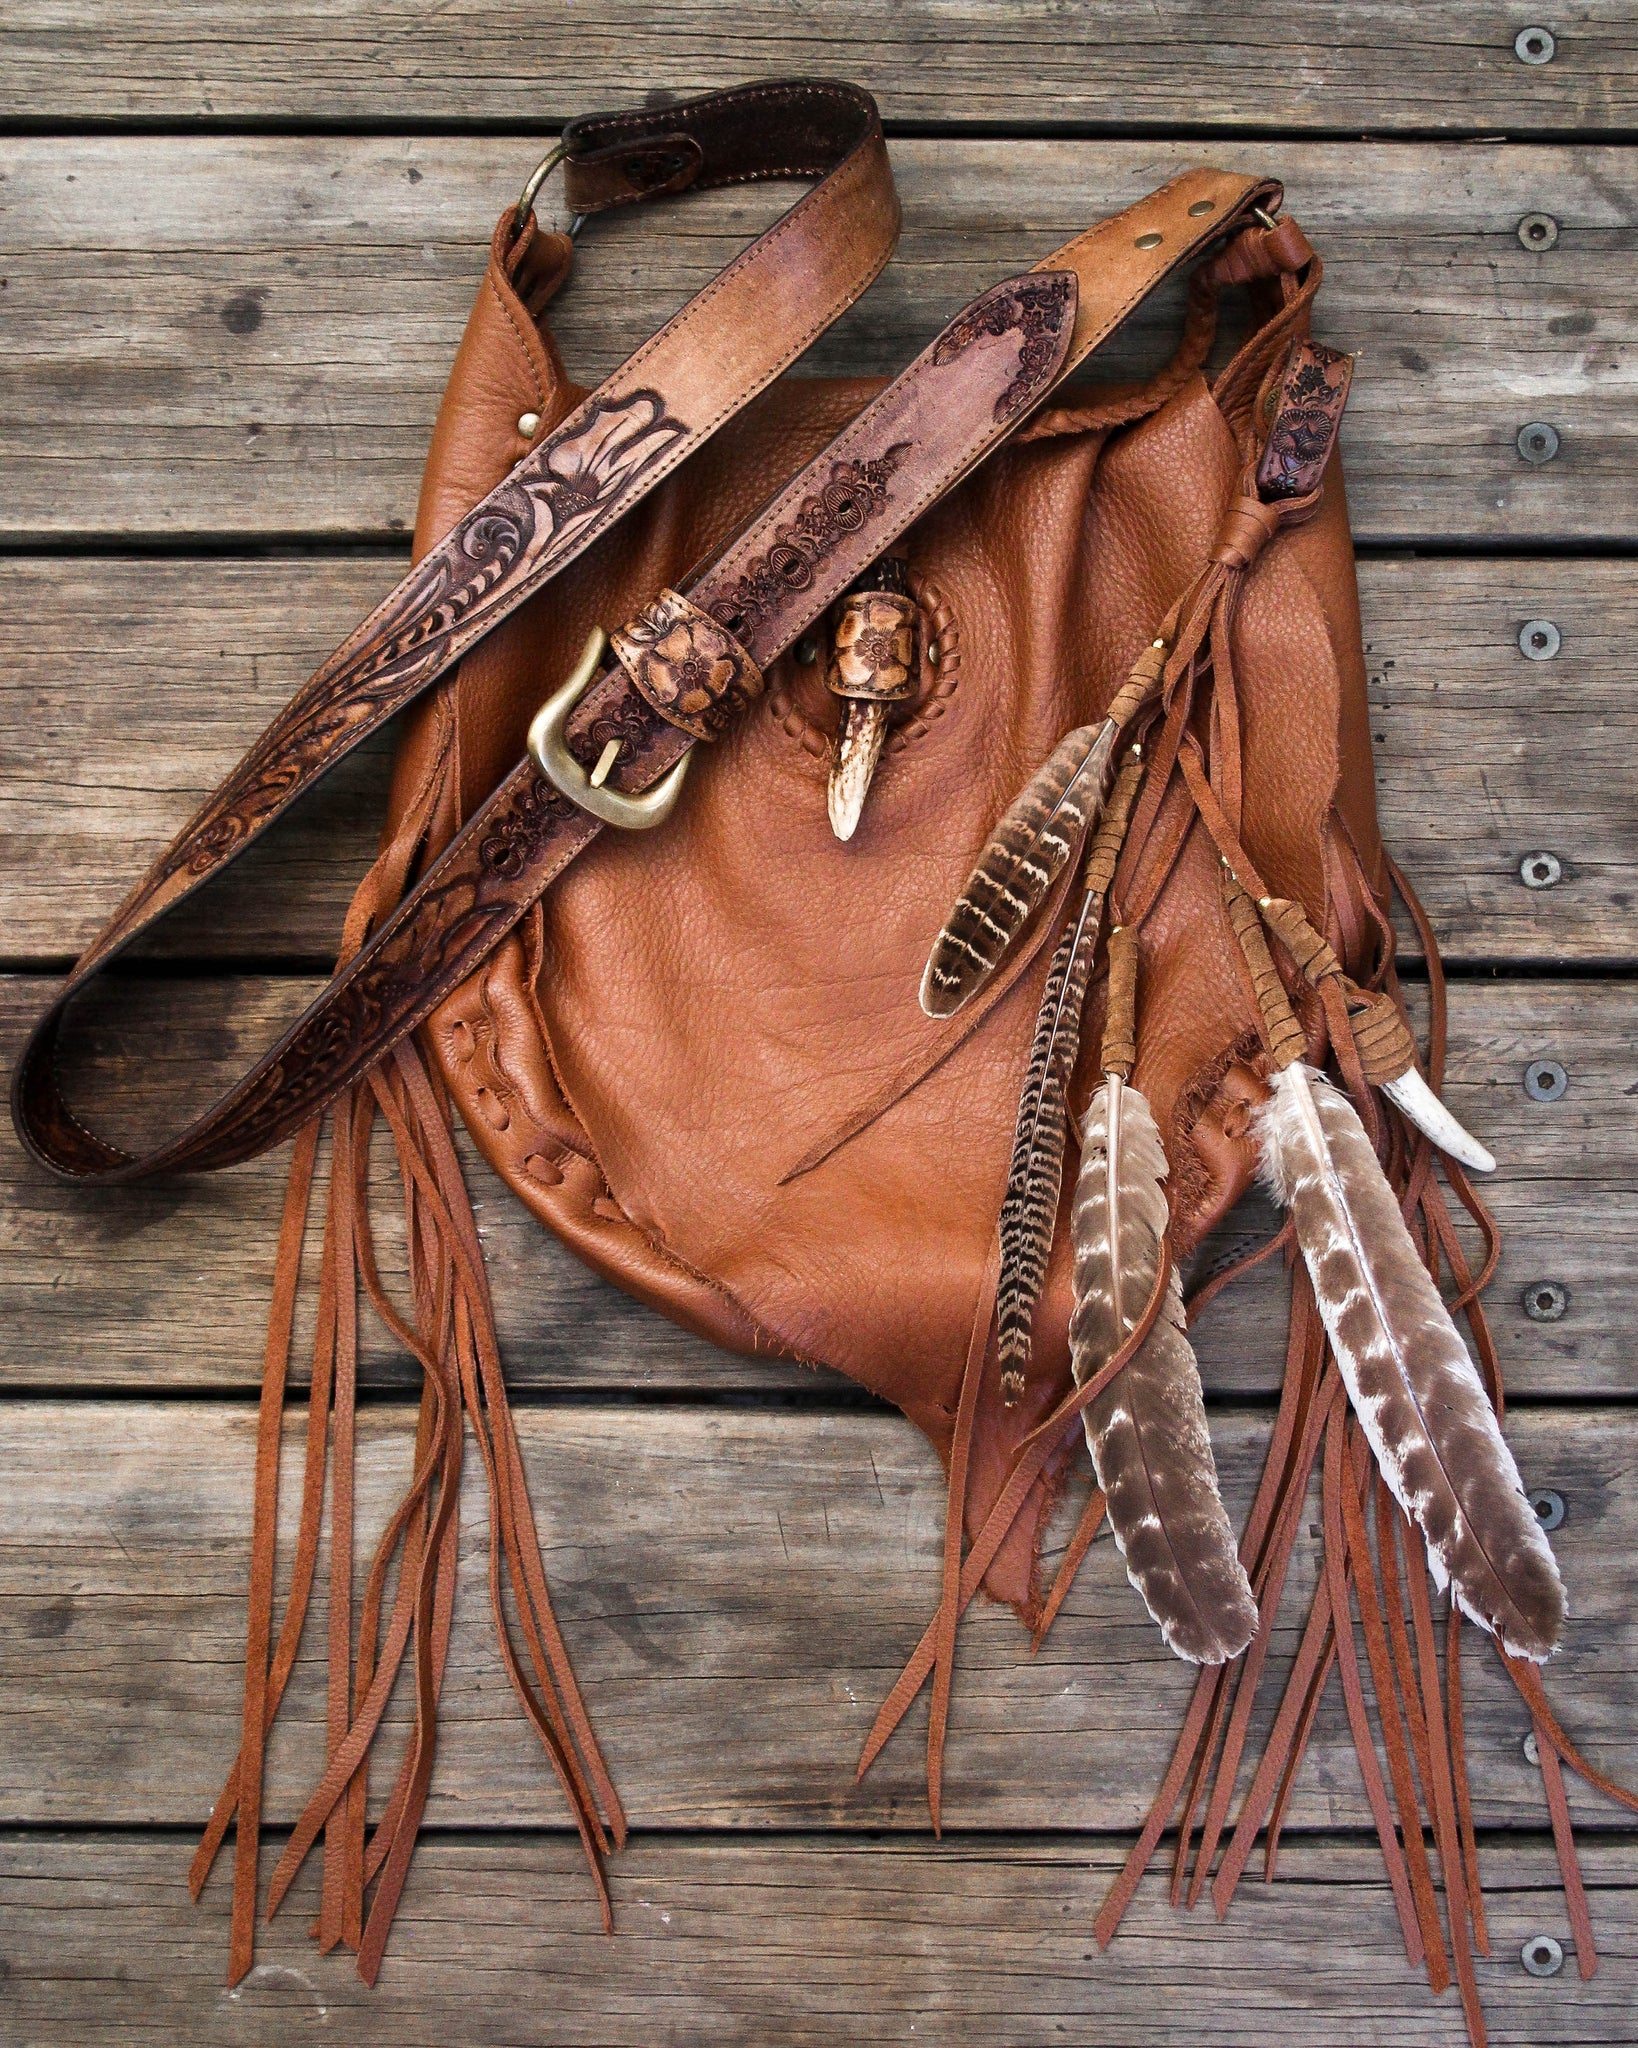 Raw Hyde Nomad Bag with Stag Horn Fastening in soft tan leather.